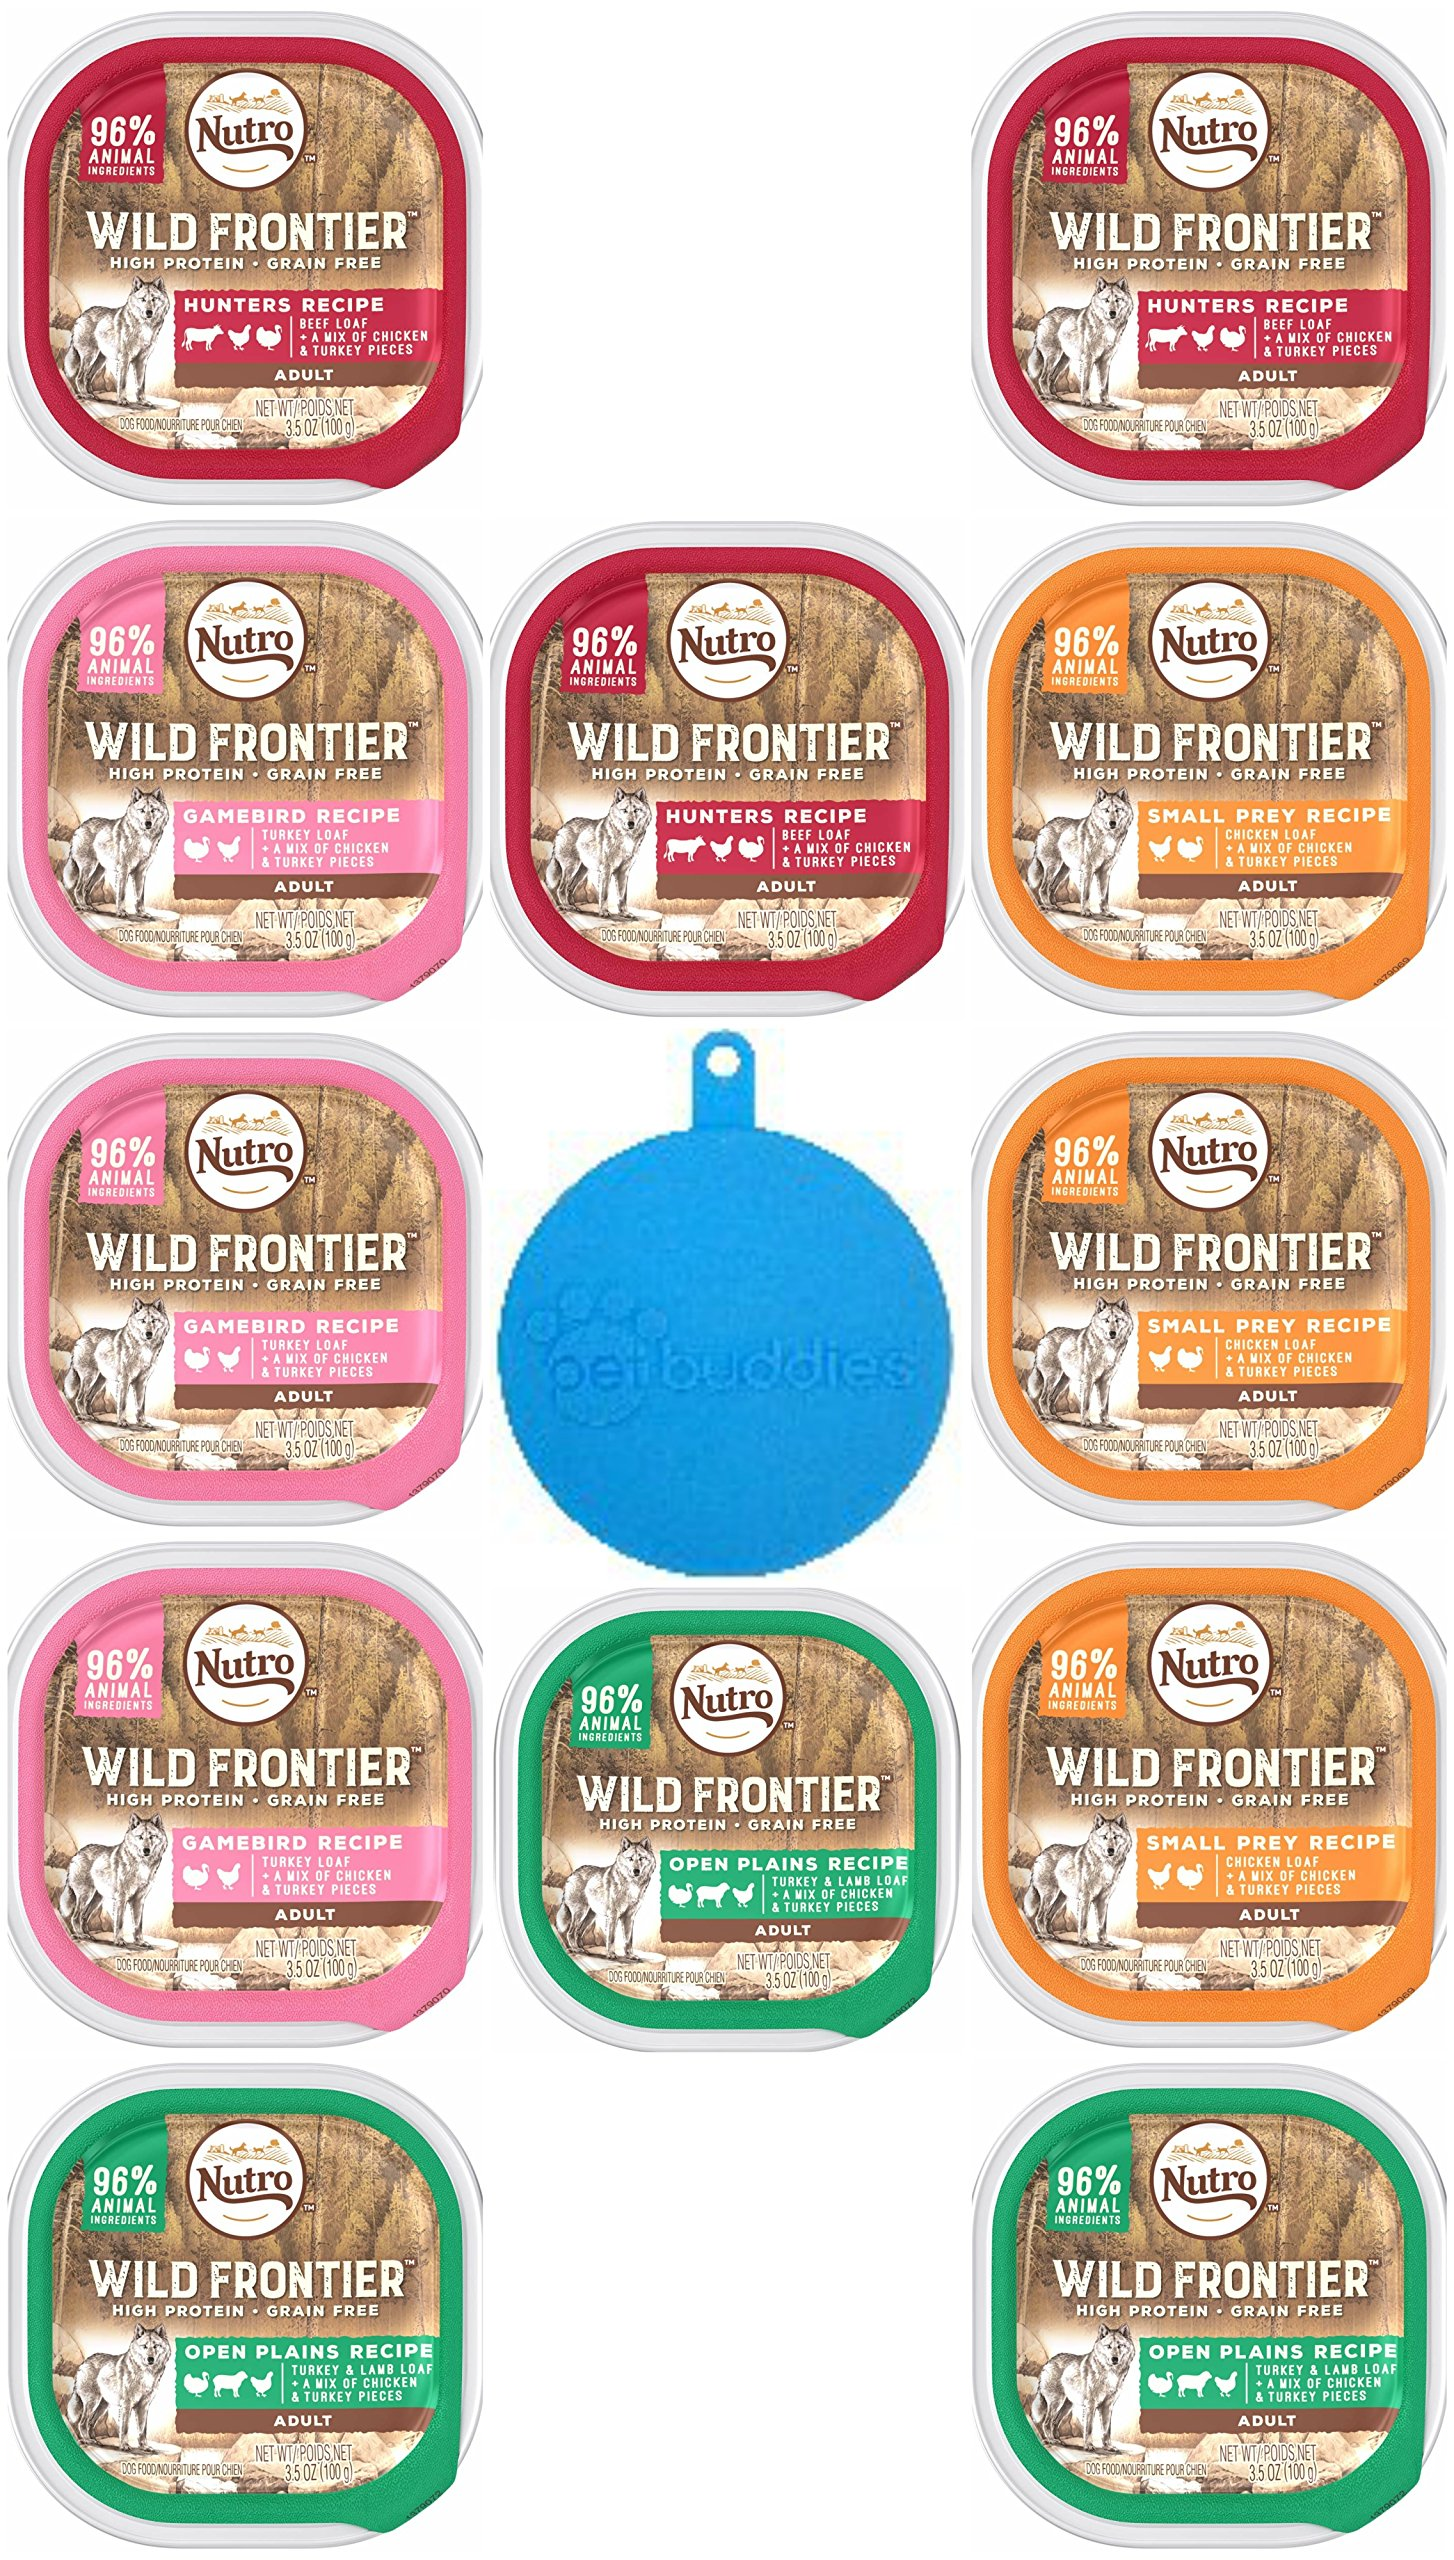 Nutro Wild Frontier High Protein Grain Free Wet Dog Food Pate in 4 Flavors - Beef, Chicken, Turkey & Lamb, and Turkey - 12 Trays Total, 3.5 Oz Each - Plus Silicone Pet Food Cover - 13 Items Total